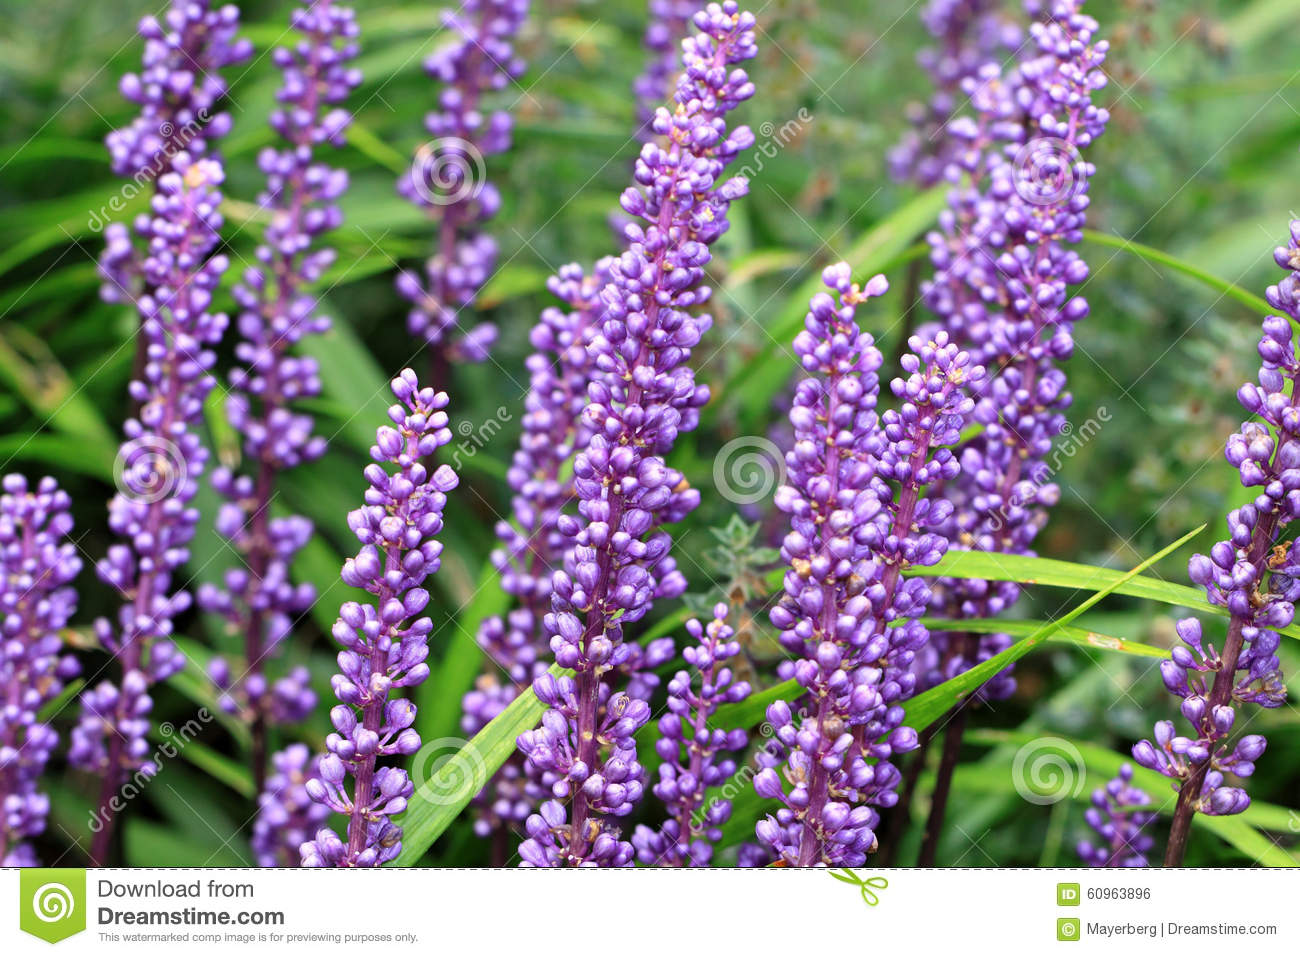 Liriope muscari flowers belongs to the lily family stock photo download liriope muscari flowers belongs to the lily family stock photo image of lilac izmirmasajfo